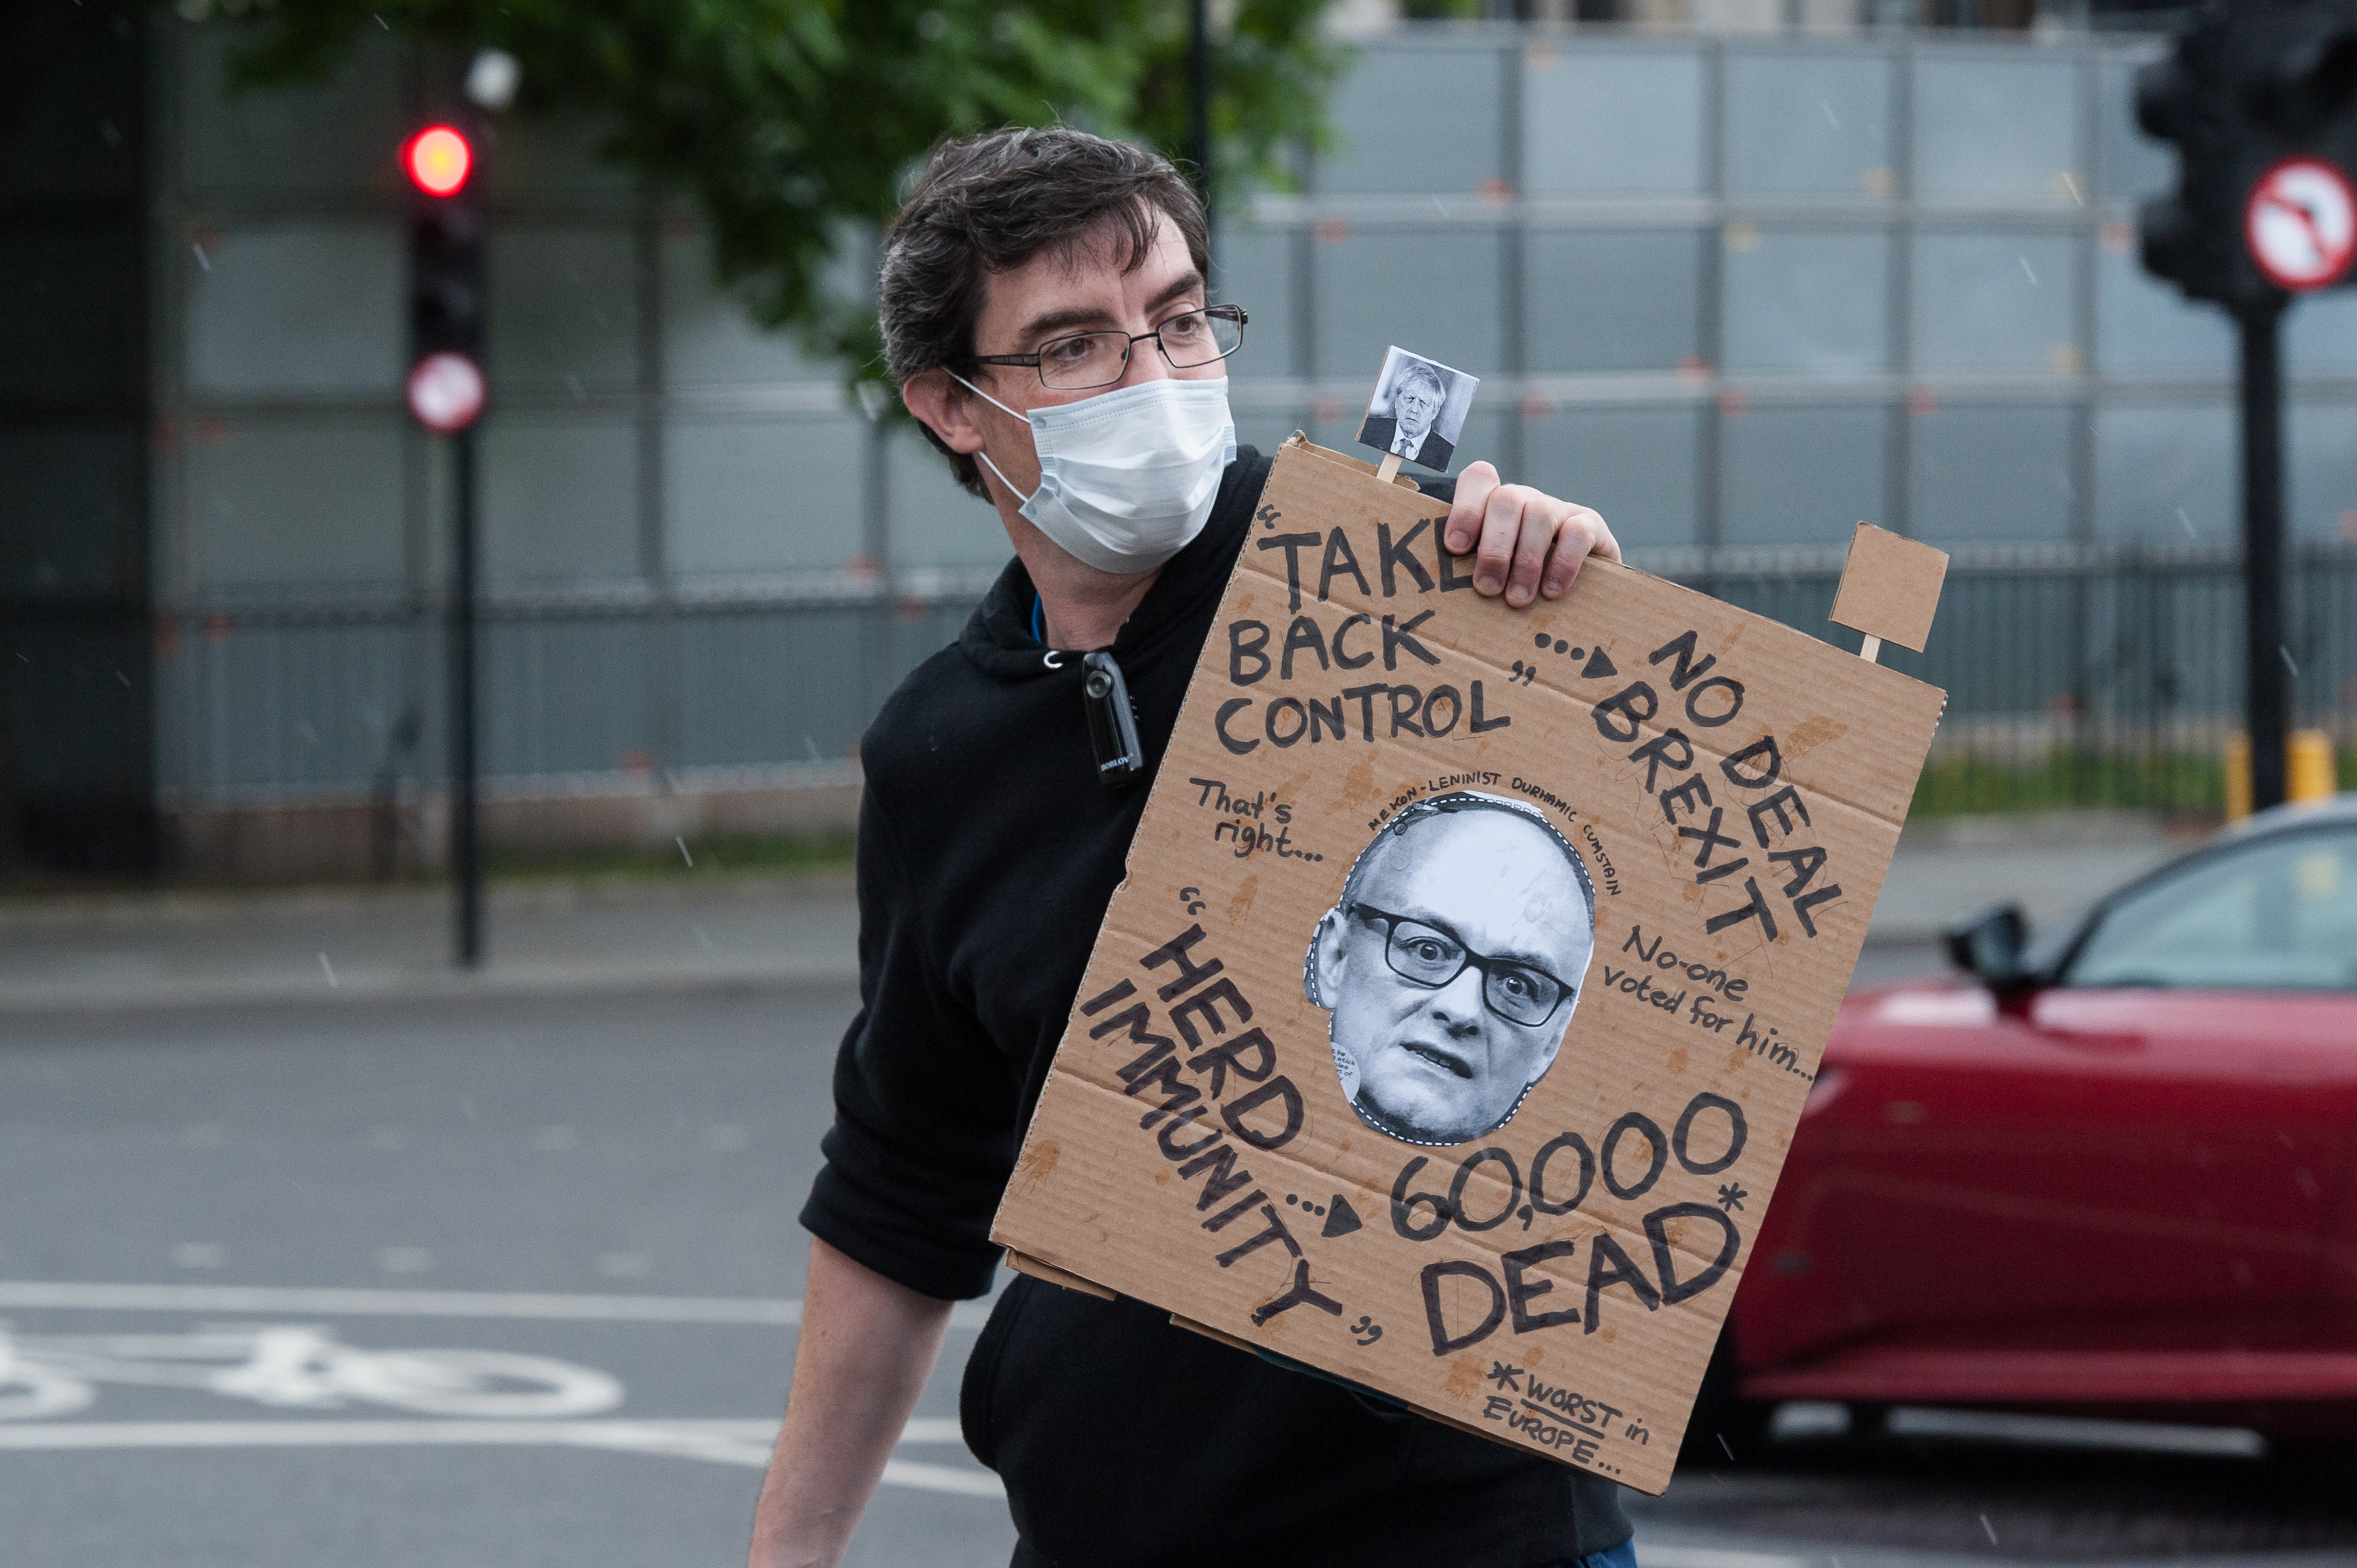 A protestor holds a placard depicting Dominic Cummings, Special Political Advisor for the Prime Minister Boris Johnson, as pro-EU supporters demonstrate outside Houses of Parliament against no-deal Brexit and call for an extension of the transition period on 17 June, 2020 in London, England. The EU and the UK are negotiating the post-Brexit relationship as Britain's transition period ends in December. (Photo by WIktor Szymanowicz/NurPhoto via Getty Images)